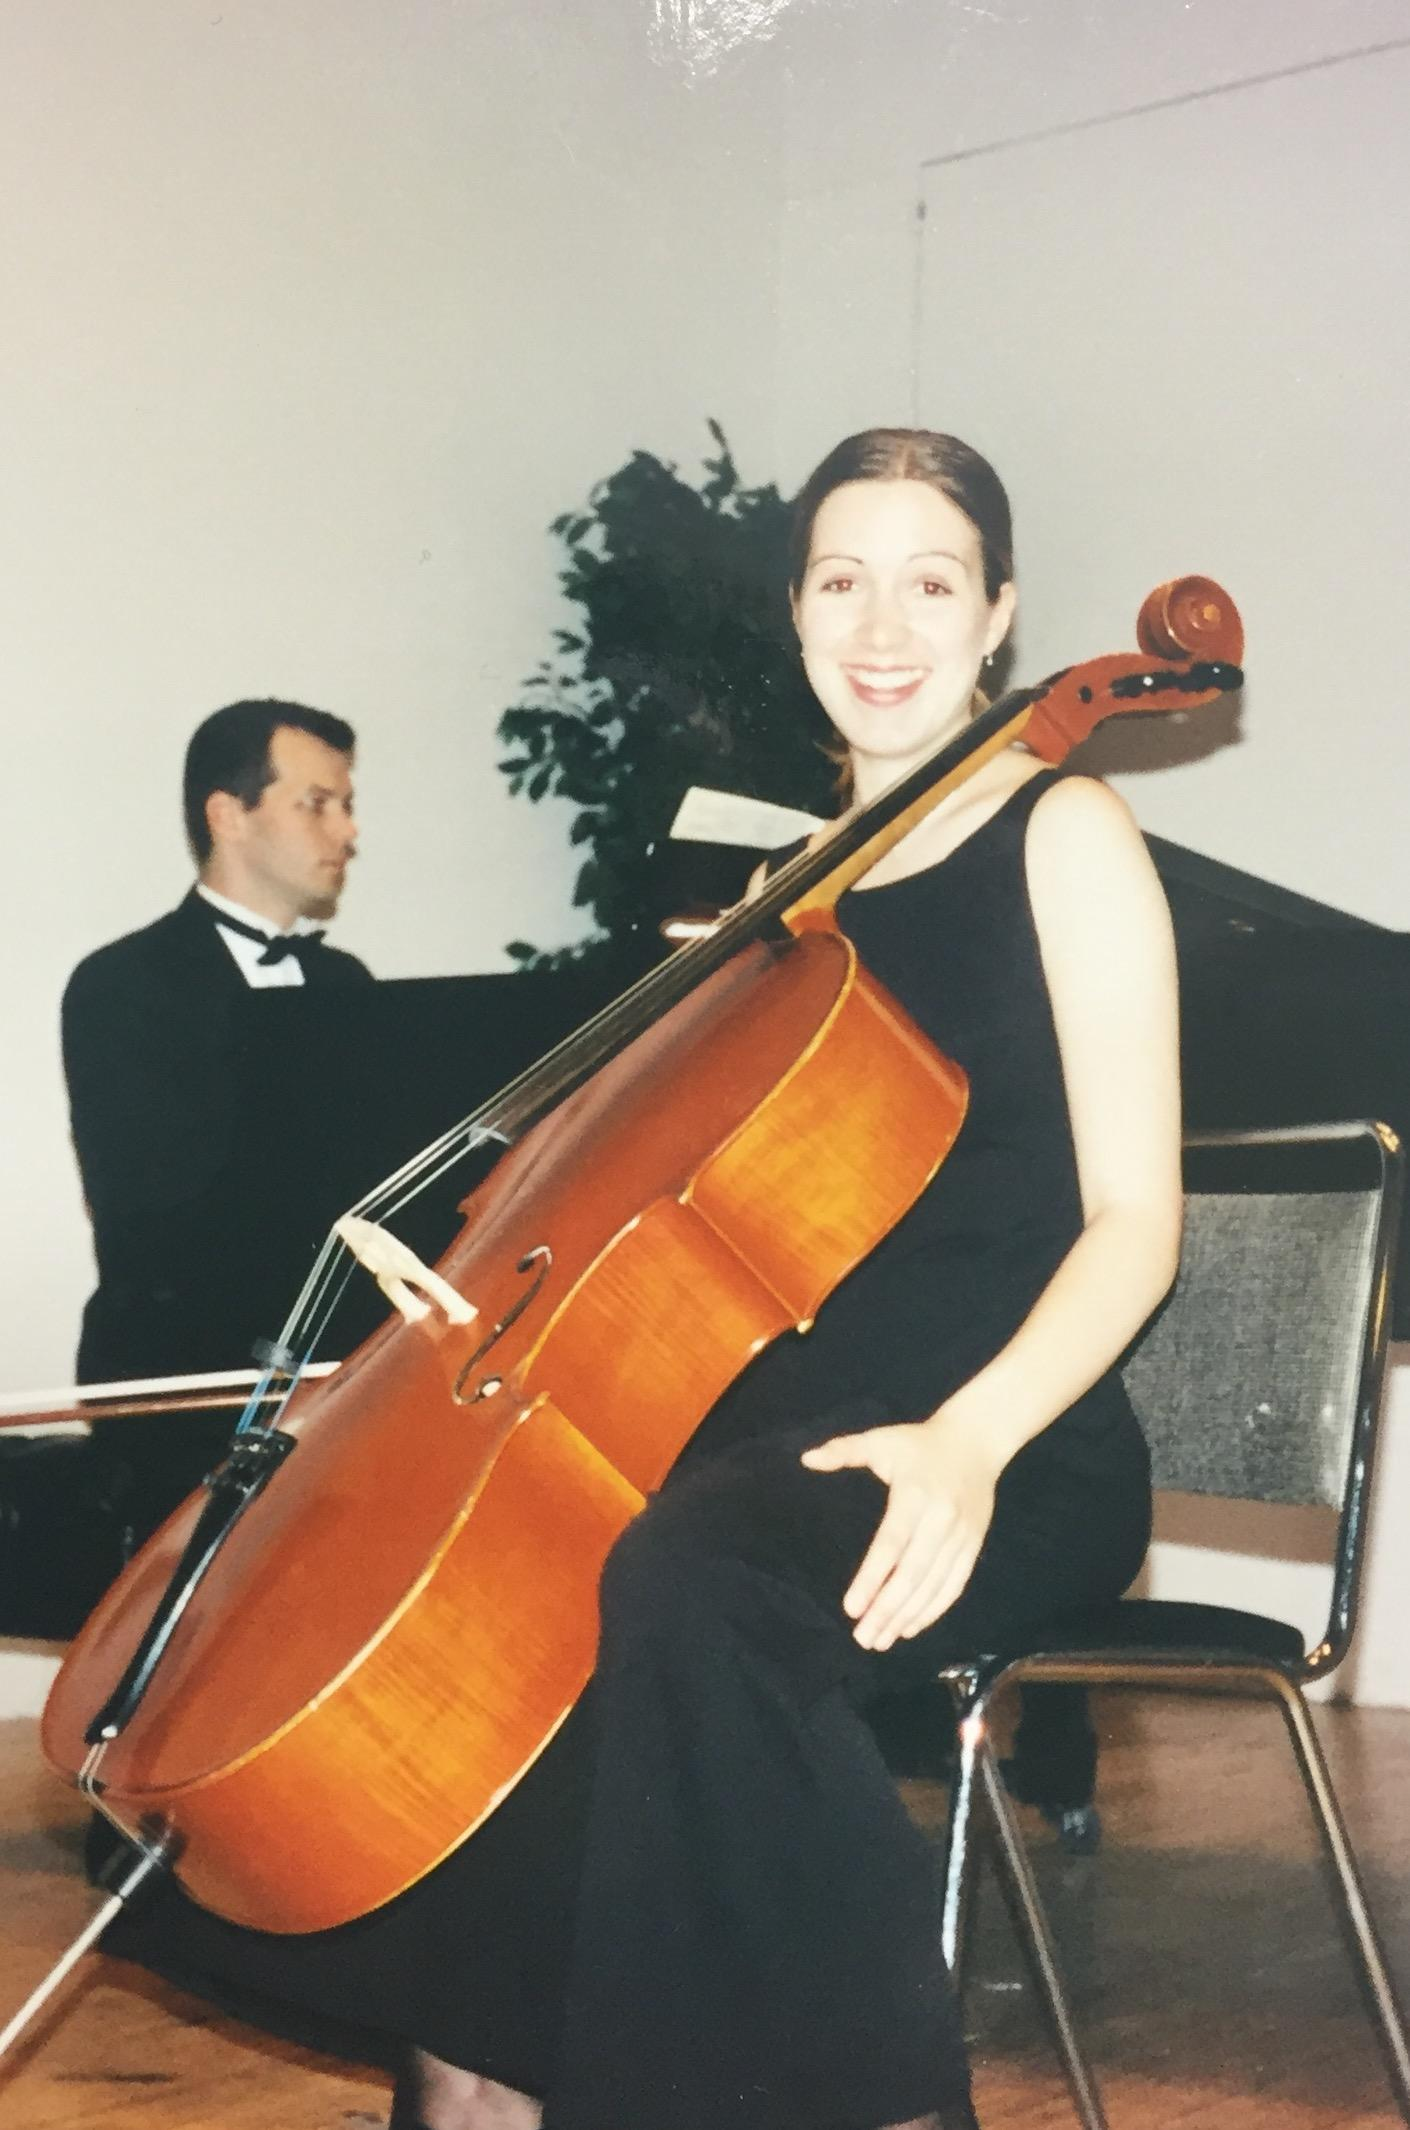 Smith performing on the cello during a recital in her early life. Used with curtesy of Susan Smith.